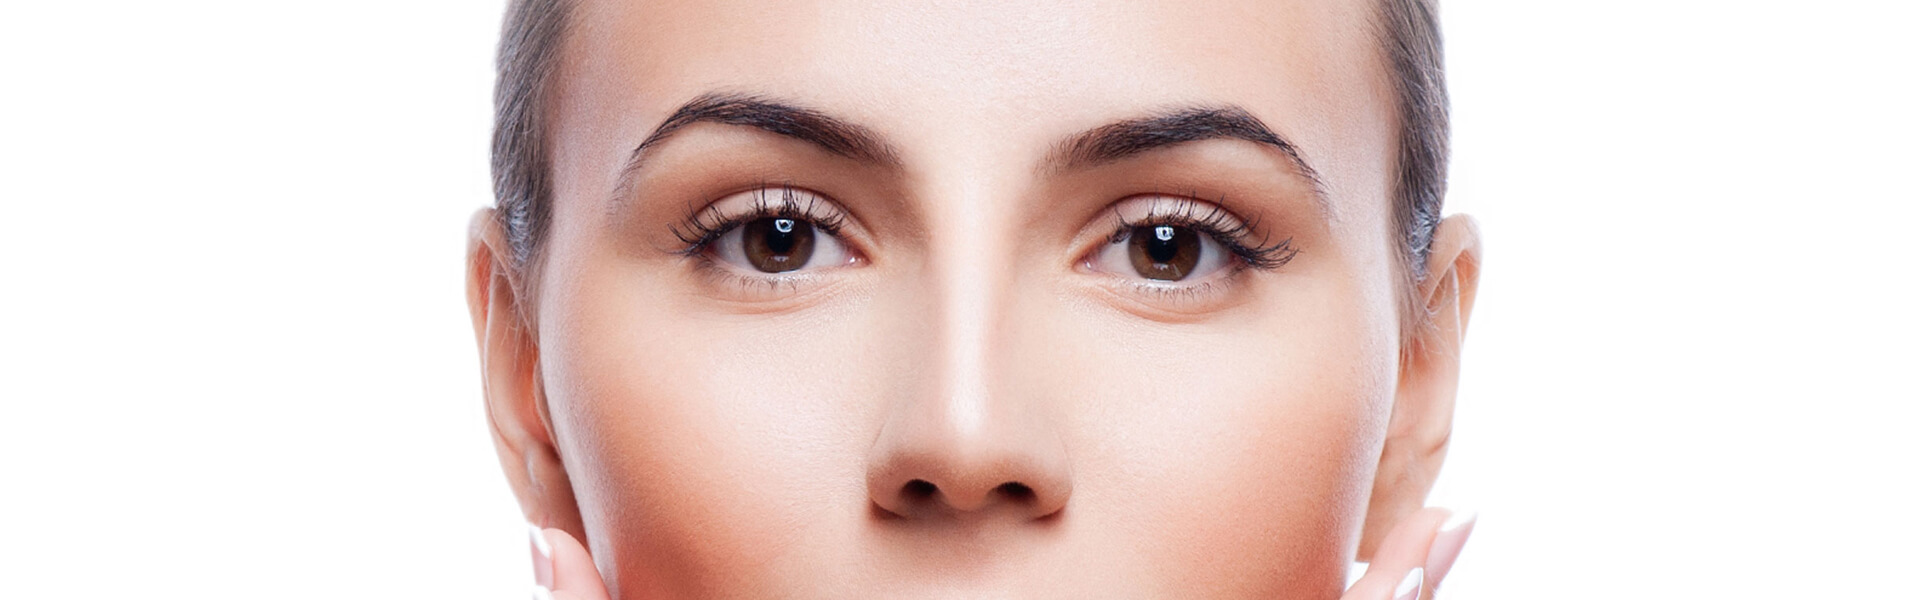 Cosmetic Eyelid Surgery Specialist